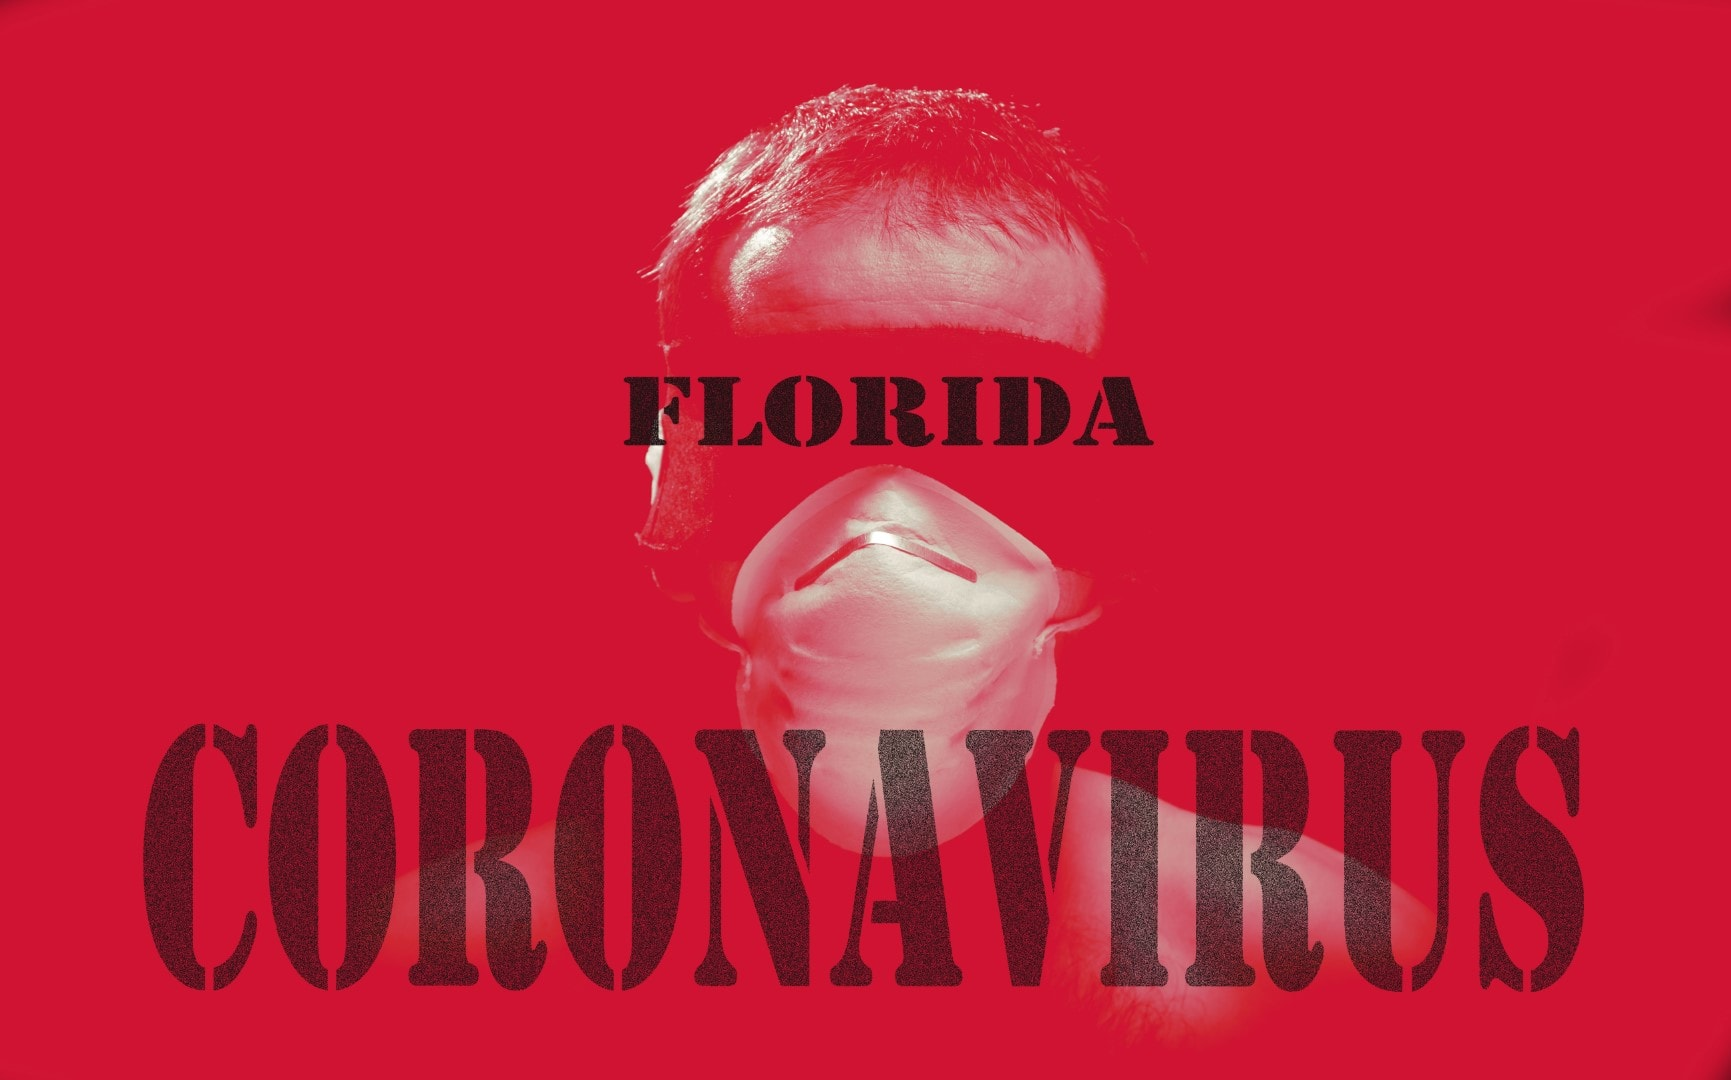 florida coronavirus red sign or letter with a man head wearing blindfold and surgical mask as an alert the virus